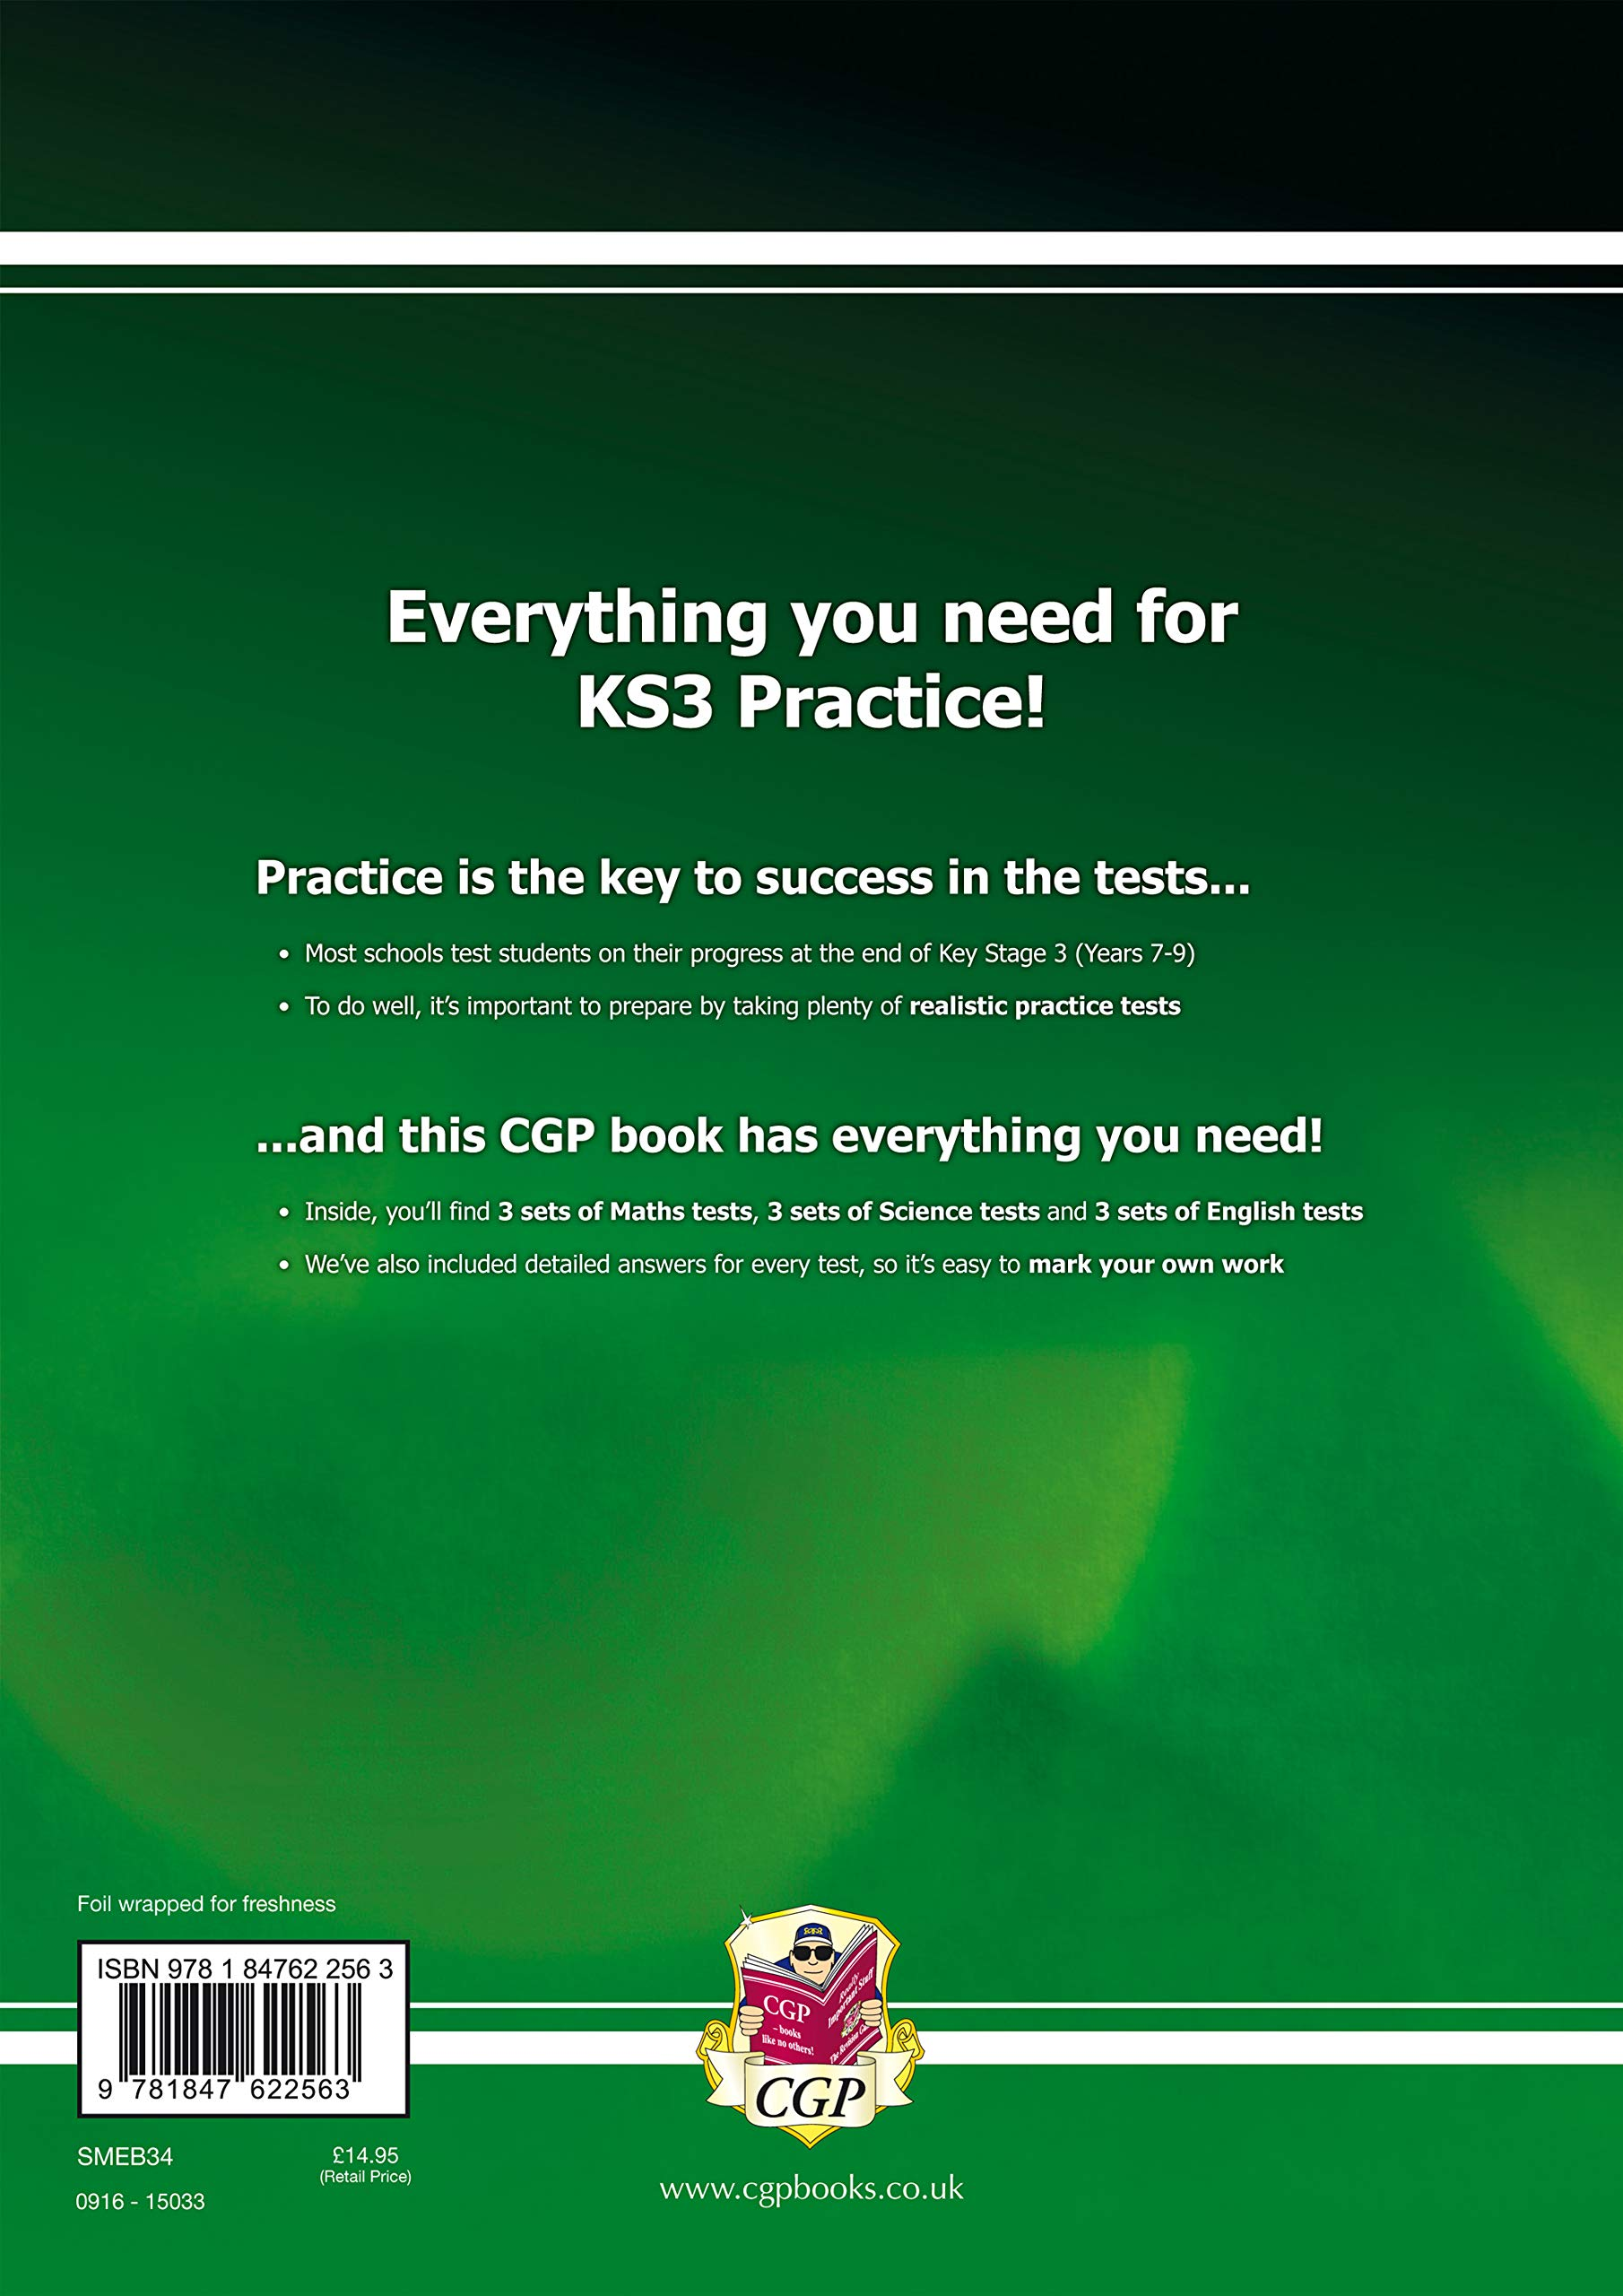 KS3 Complete Practice Tests - Maths, Science & English (CGP KS3